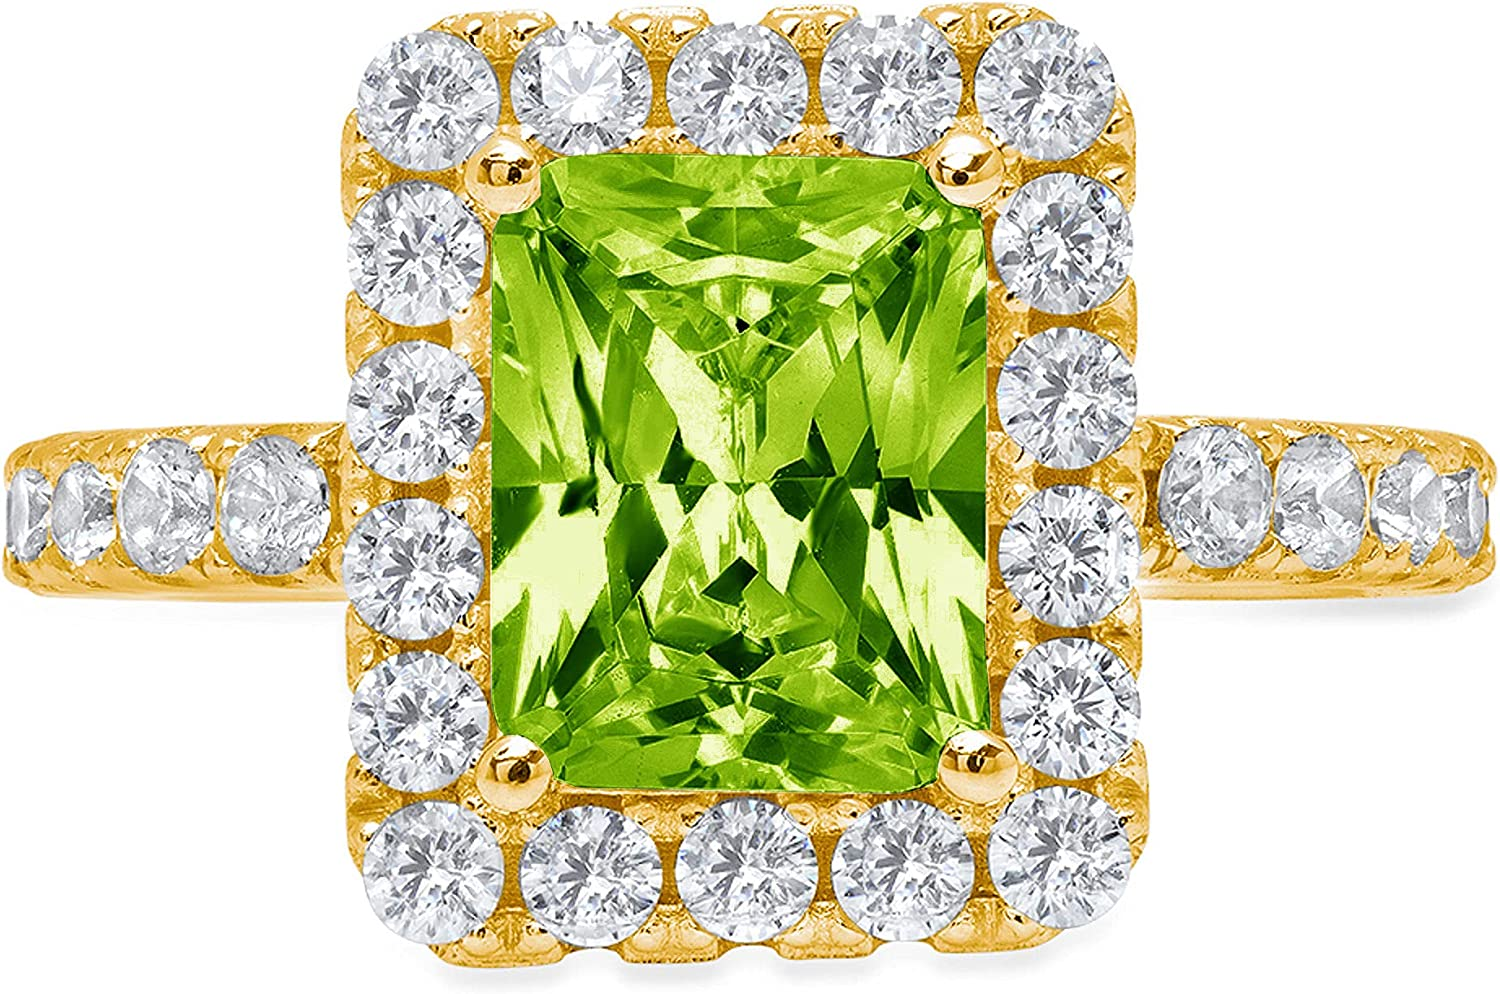 3.90ct Brilliant Emerald Cut Solitaire Accent Halo Genuine Flawless Natural Green Peridot Gemstone Engagement Promise Anniversary Bridal Wedding Ring Solid 18K Yellow Gold